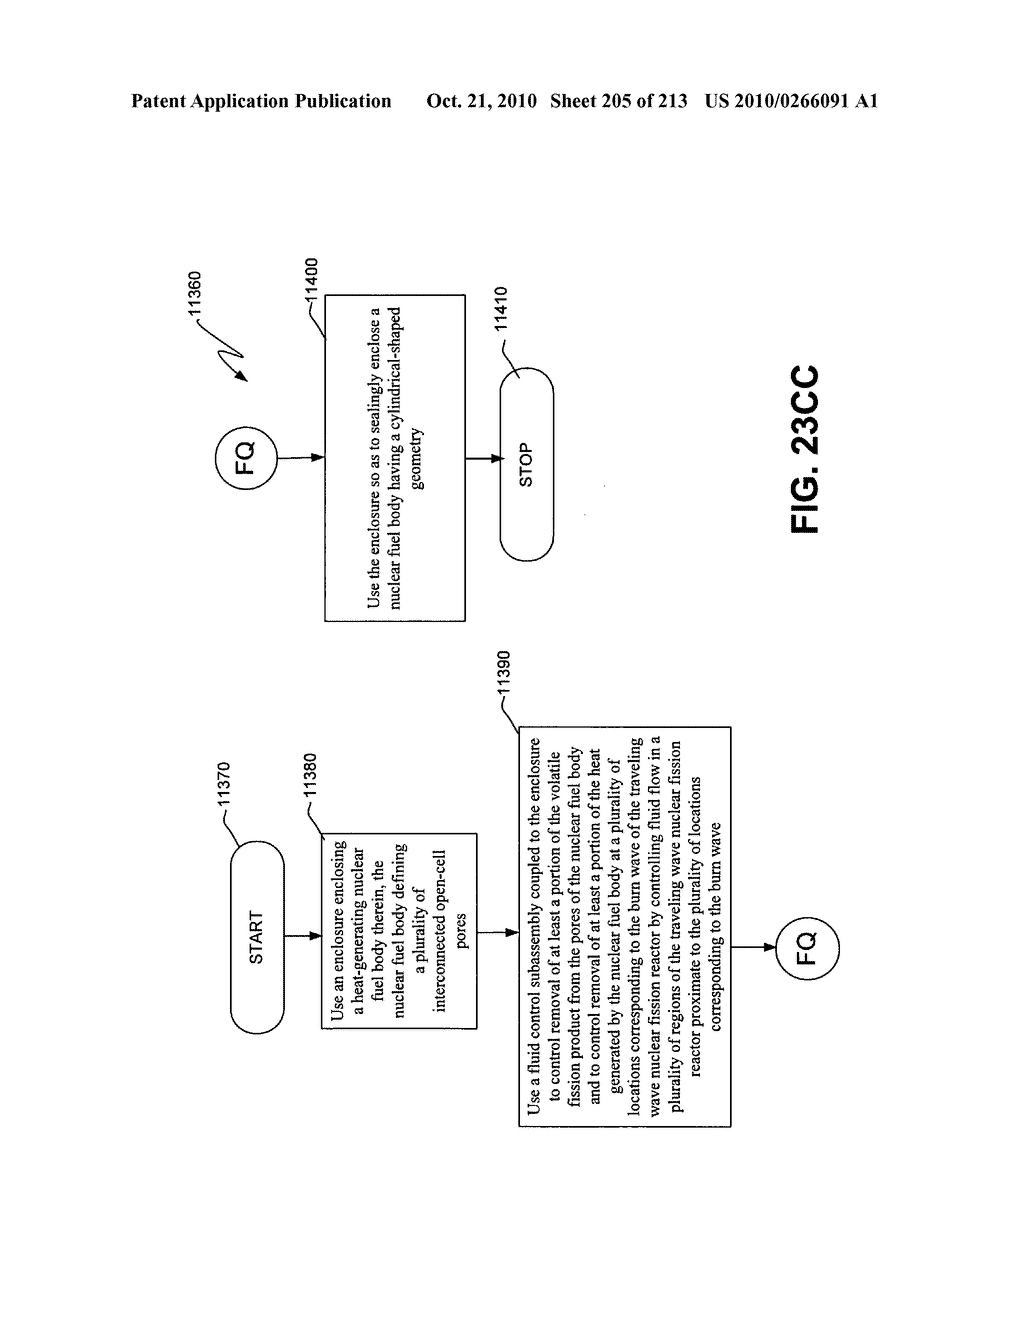 Nuclear fission reactor fuel assembly and system configured for controlled removal of a volatile fission product and heat released by a burn wave in a traveling wave nuclear fission reactor and method for same - diagram, schematic, and image 206